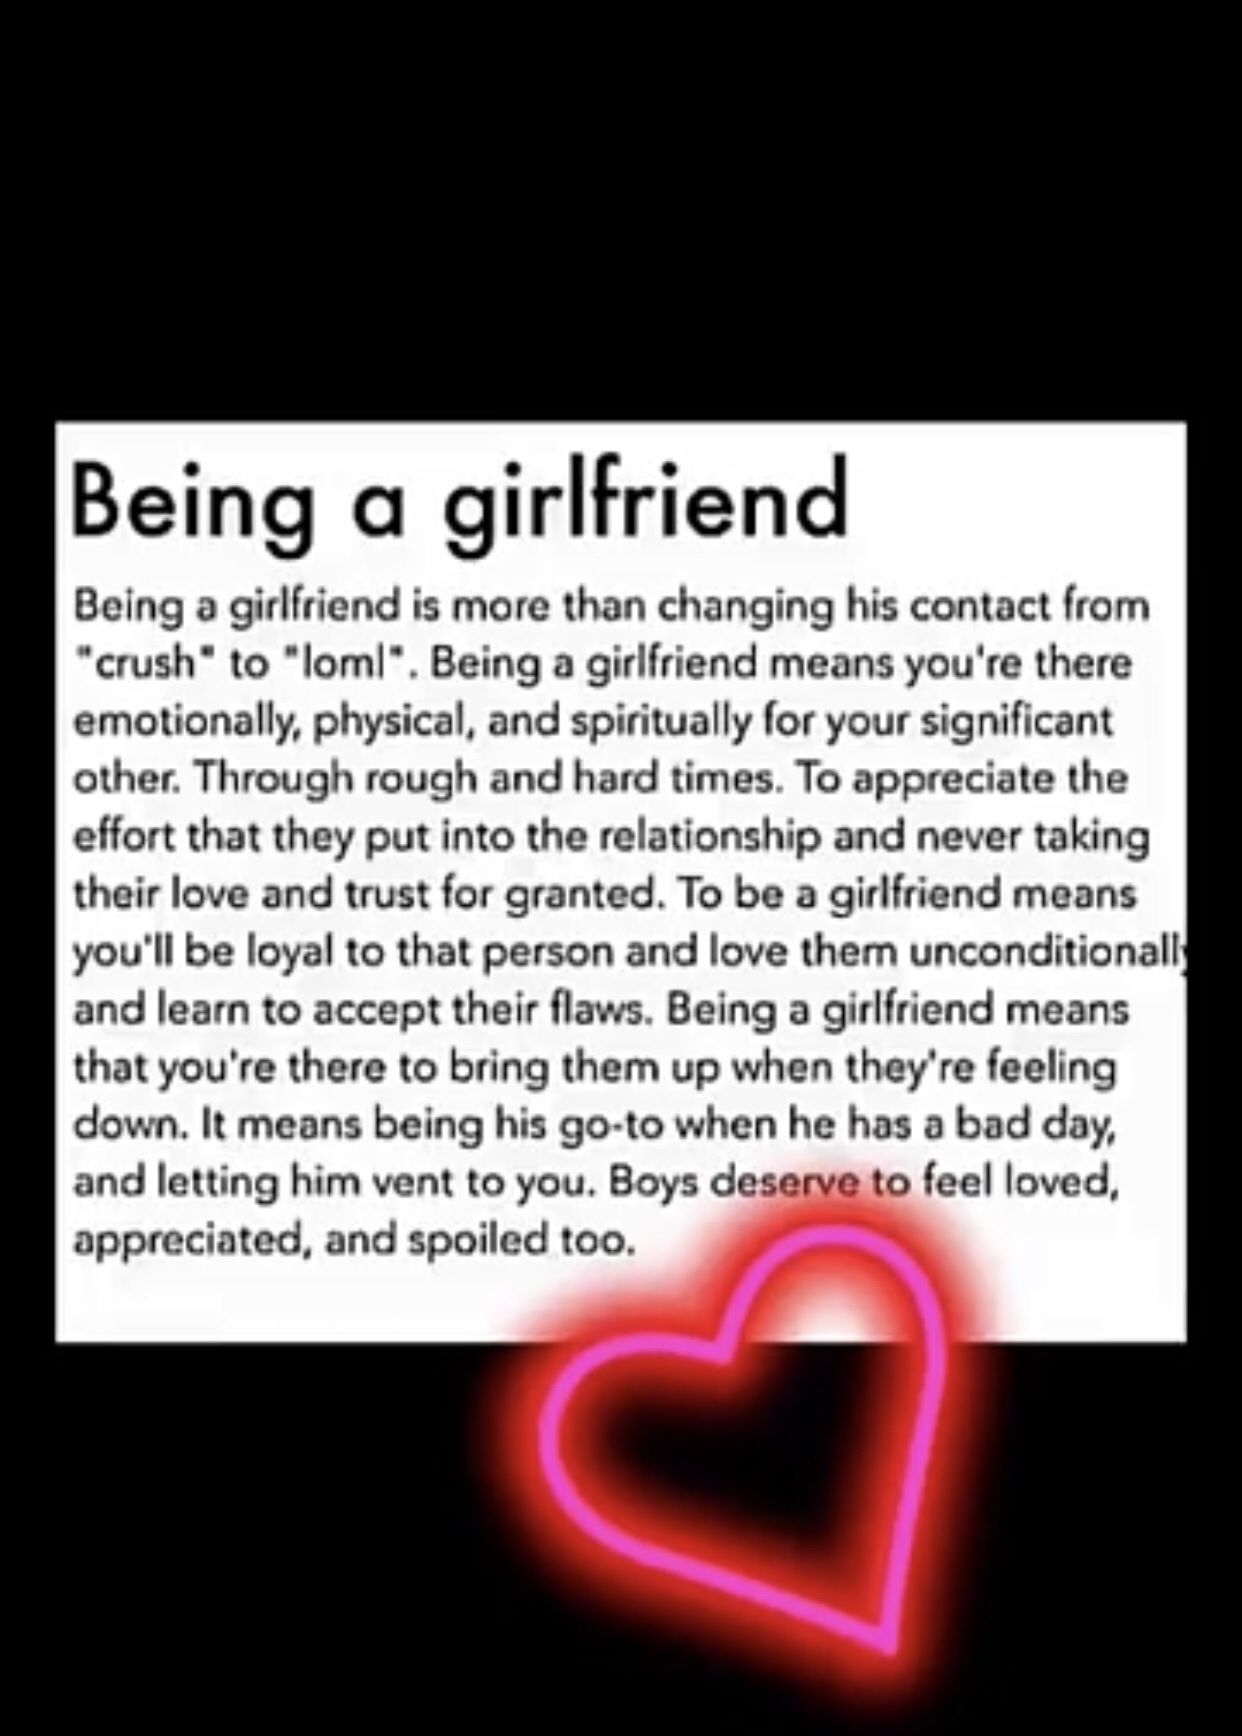 Pin By Timaa Ndow On Facts Mood Quotes Stay Positive Quotes Relationship Goals Text